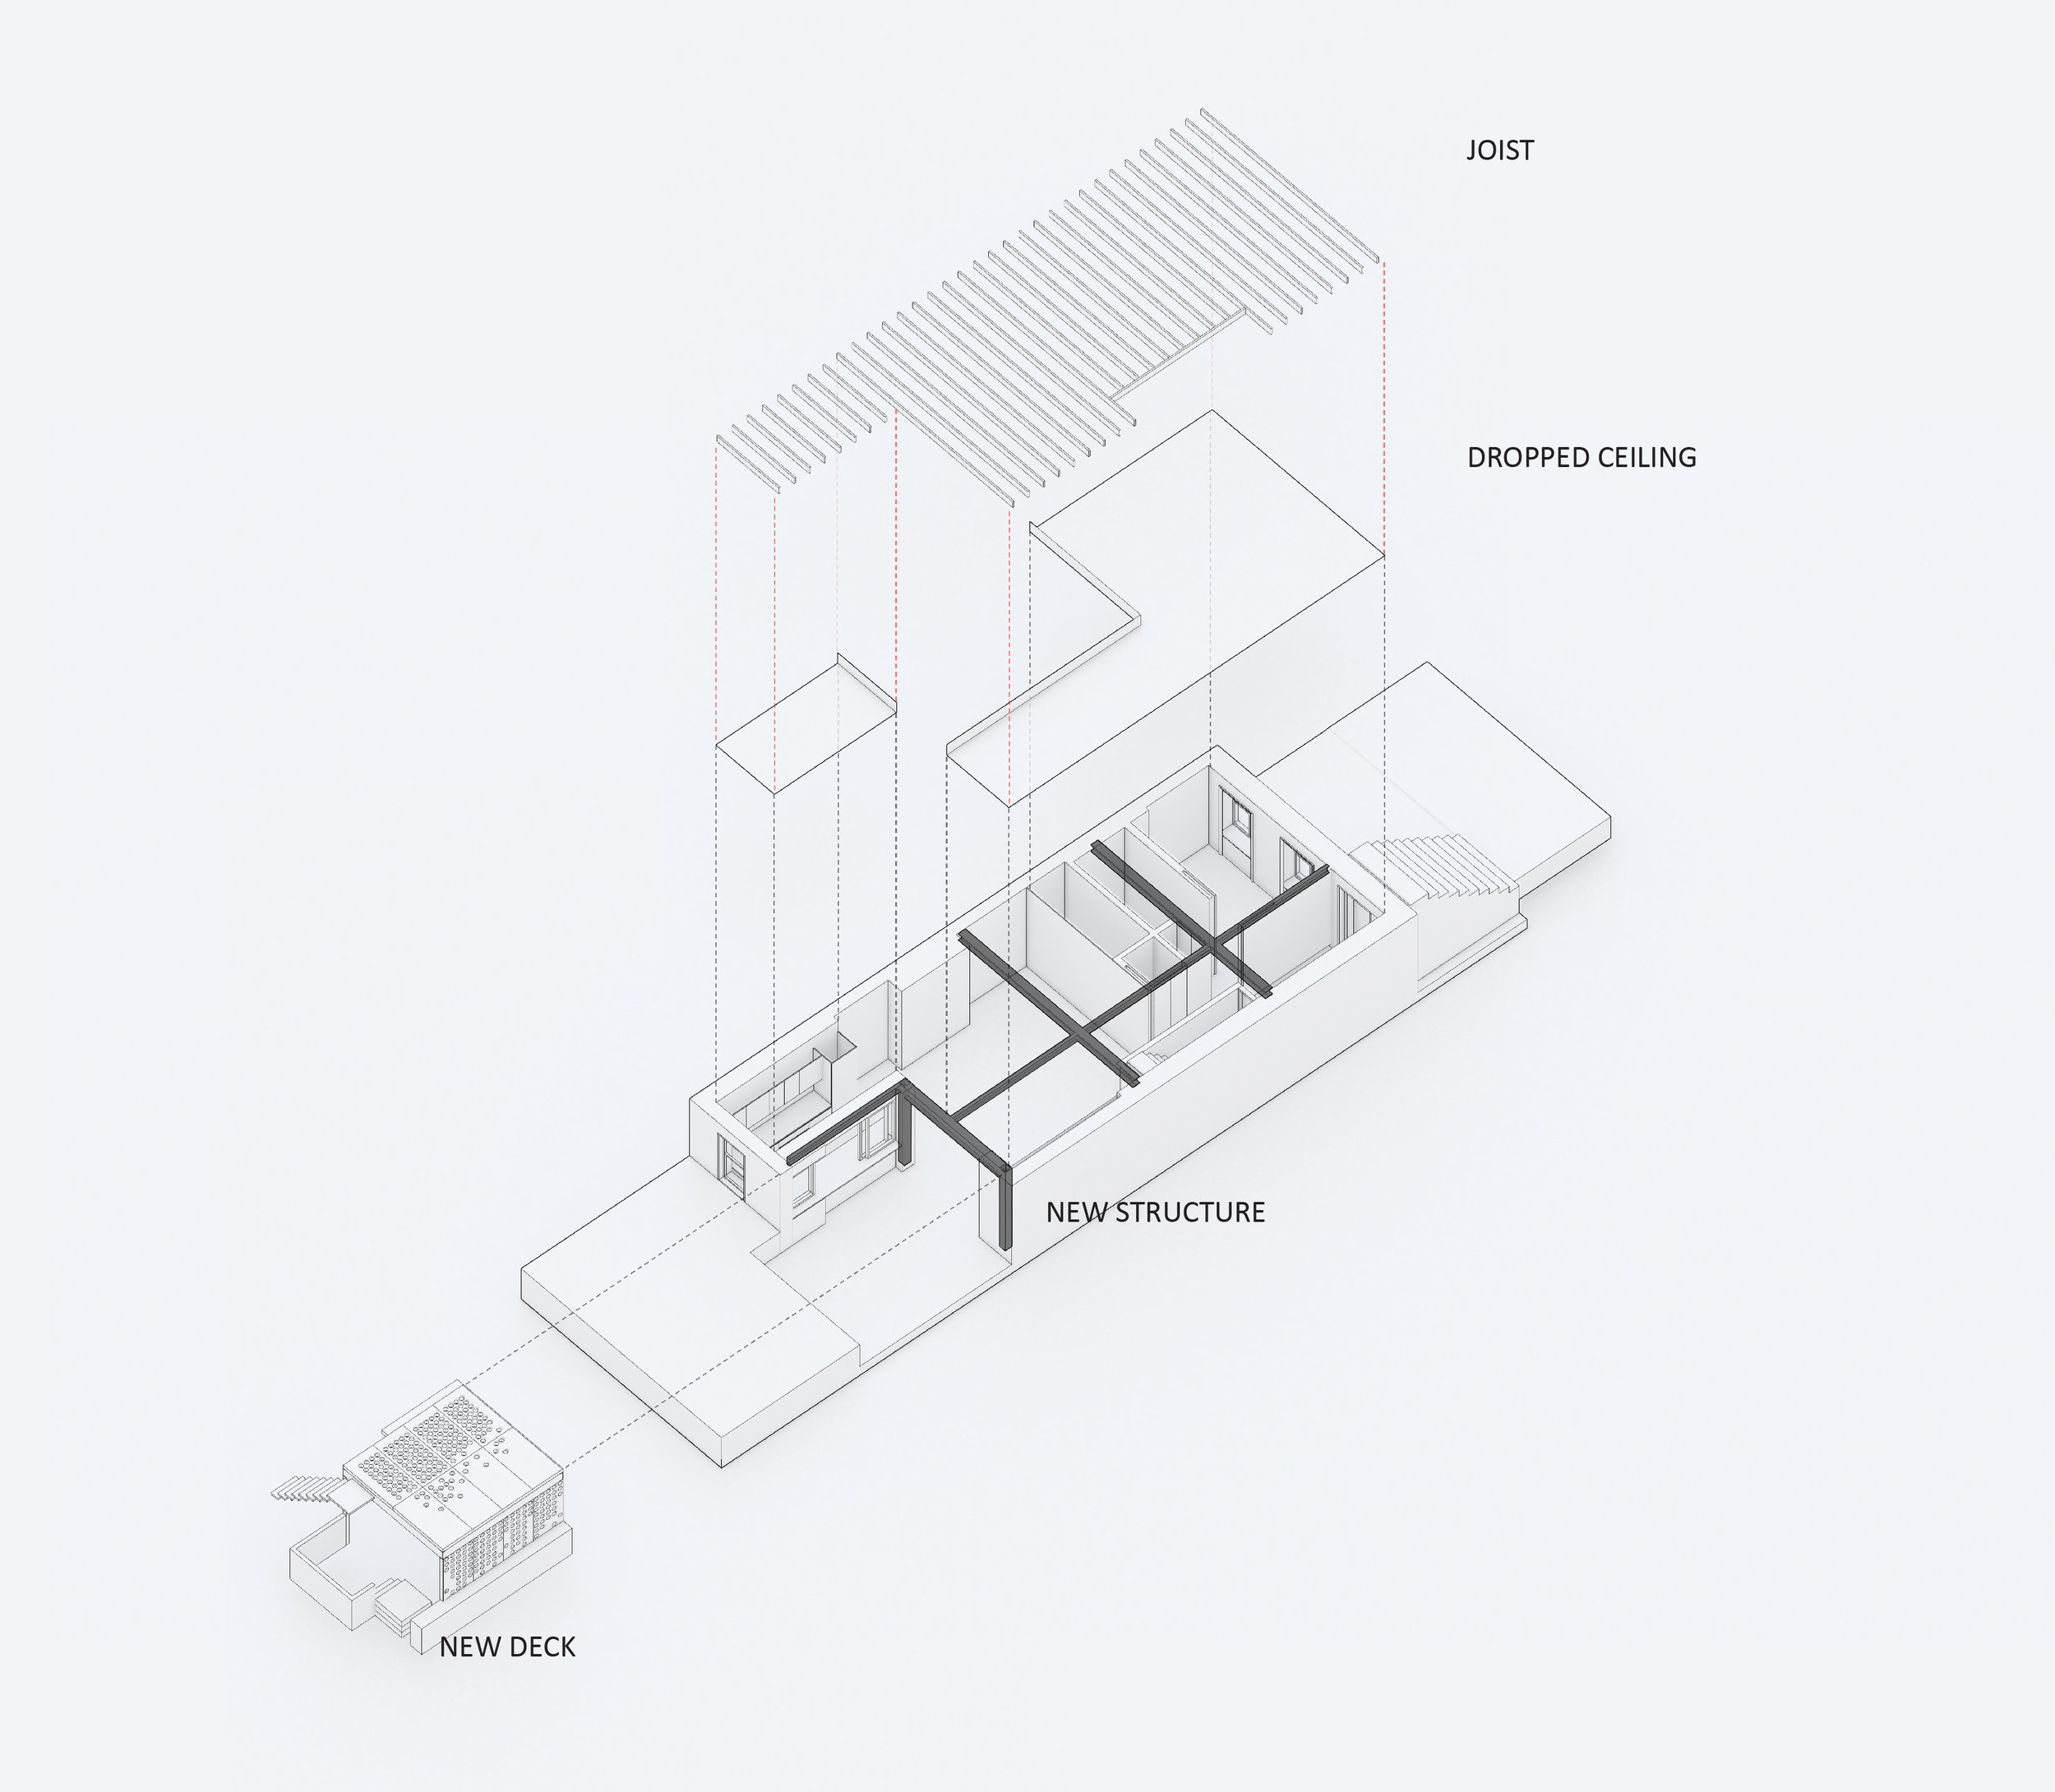 Floor Plan | Before and after renovation